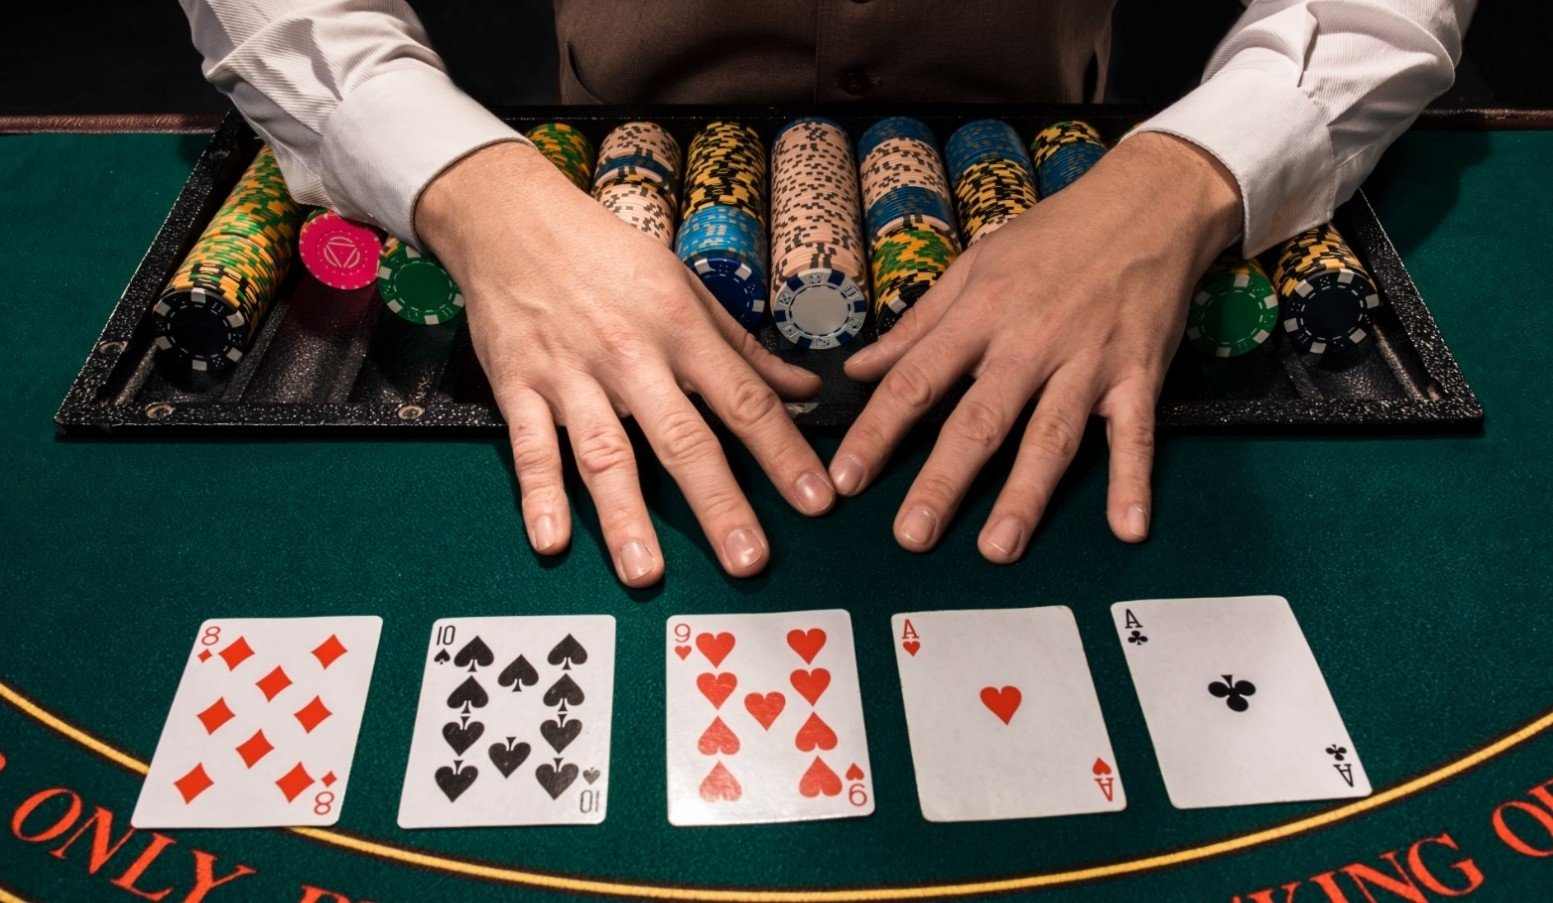 6 Mistakes In Casino That Make You Look Dumb